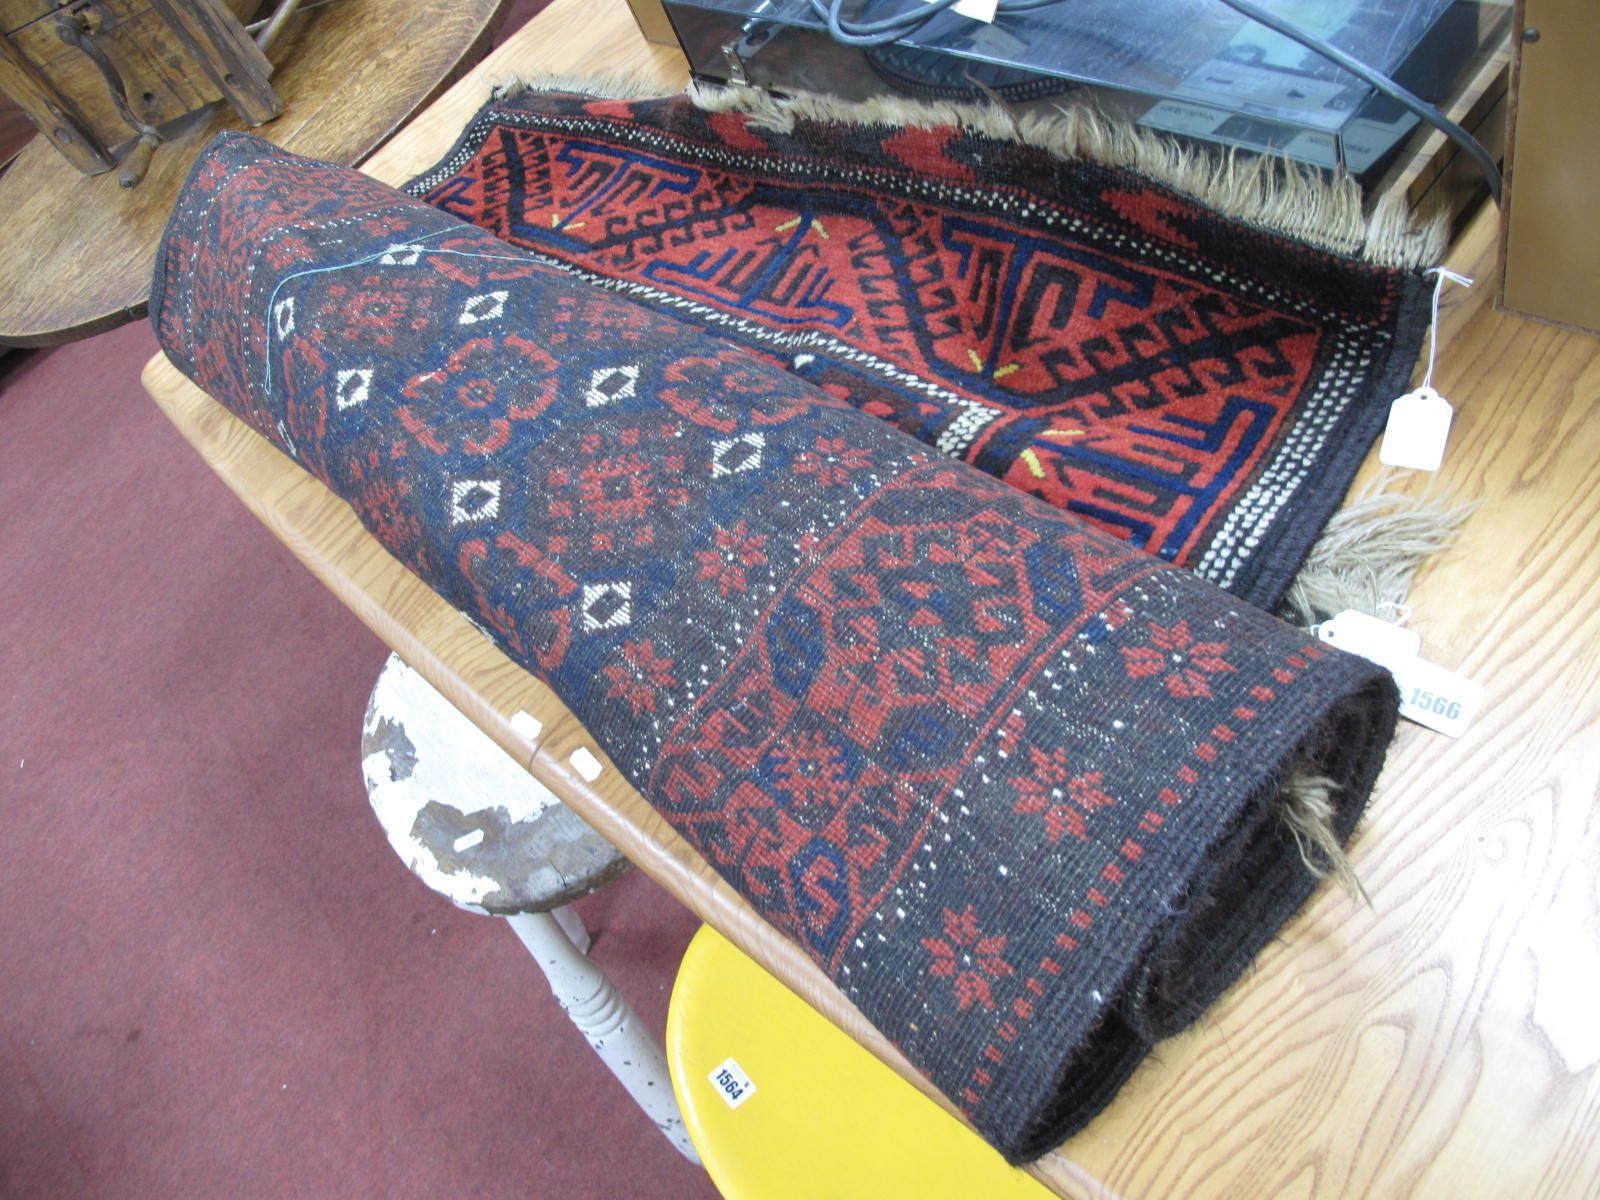 Middle Eastern Wool Tasseled Rugs, all similar with deep blue motifs, white central pips on a deep